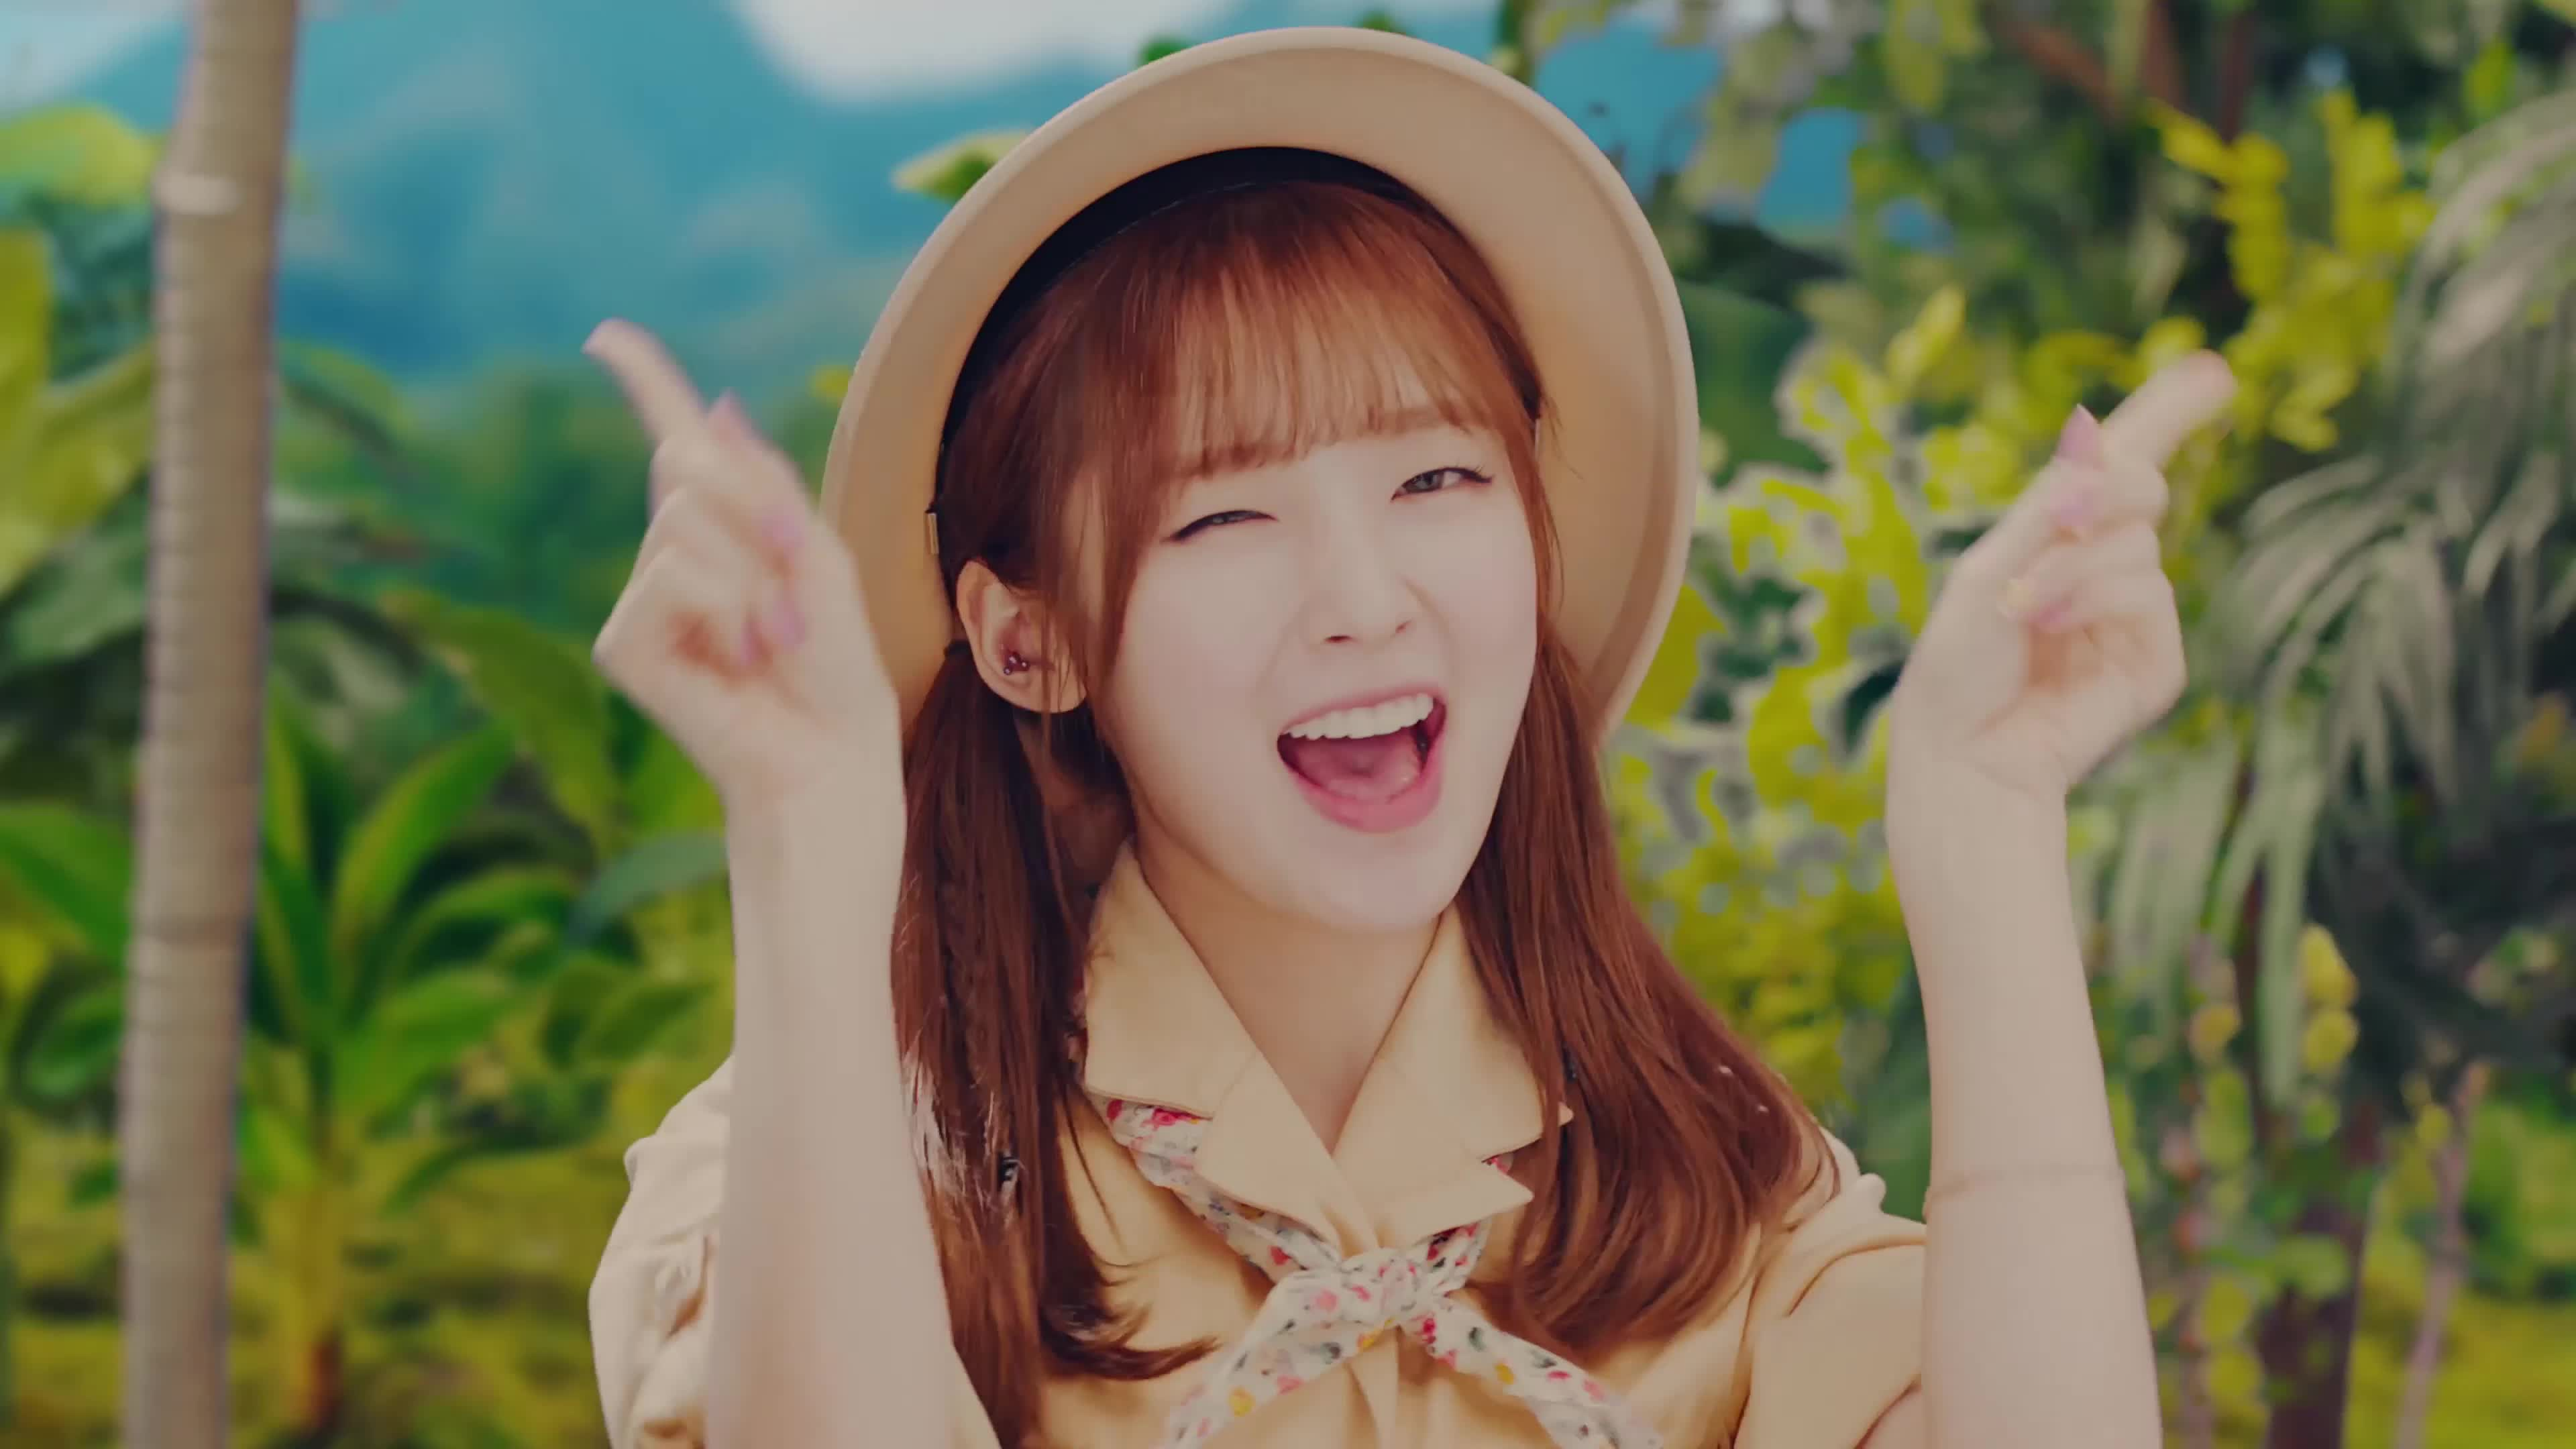 [MV] OH MY GIRL BANHANA(오마이걸 반하나) Banana allergy monkey 3 1 GIFs